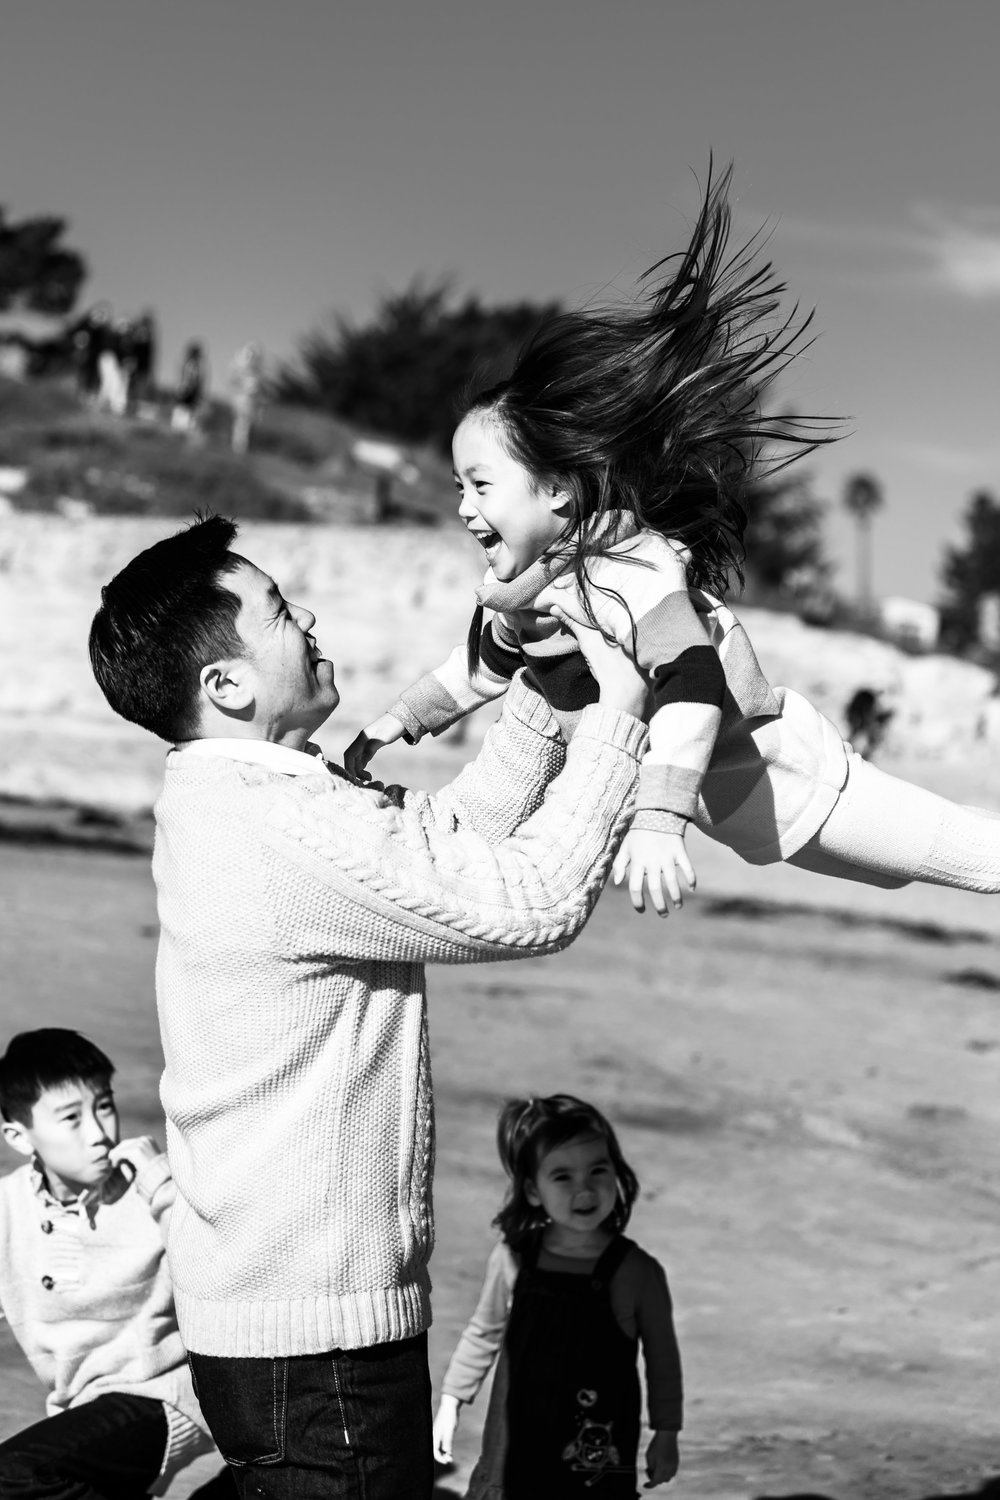 8896_Andrew_S_Natural_Bridges_Santa_Cruz_Family_Photography.jpg